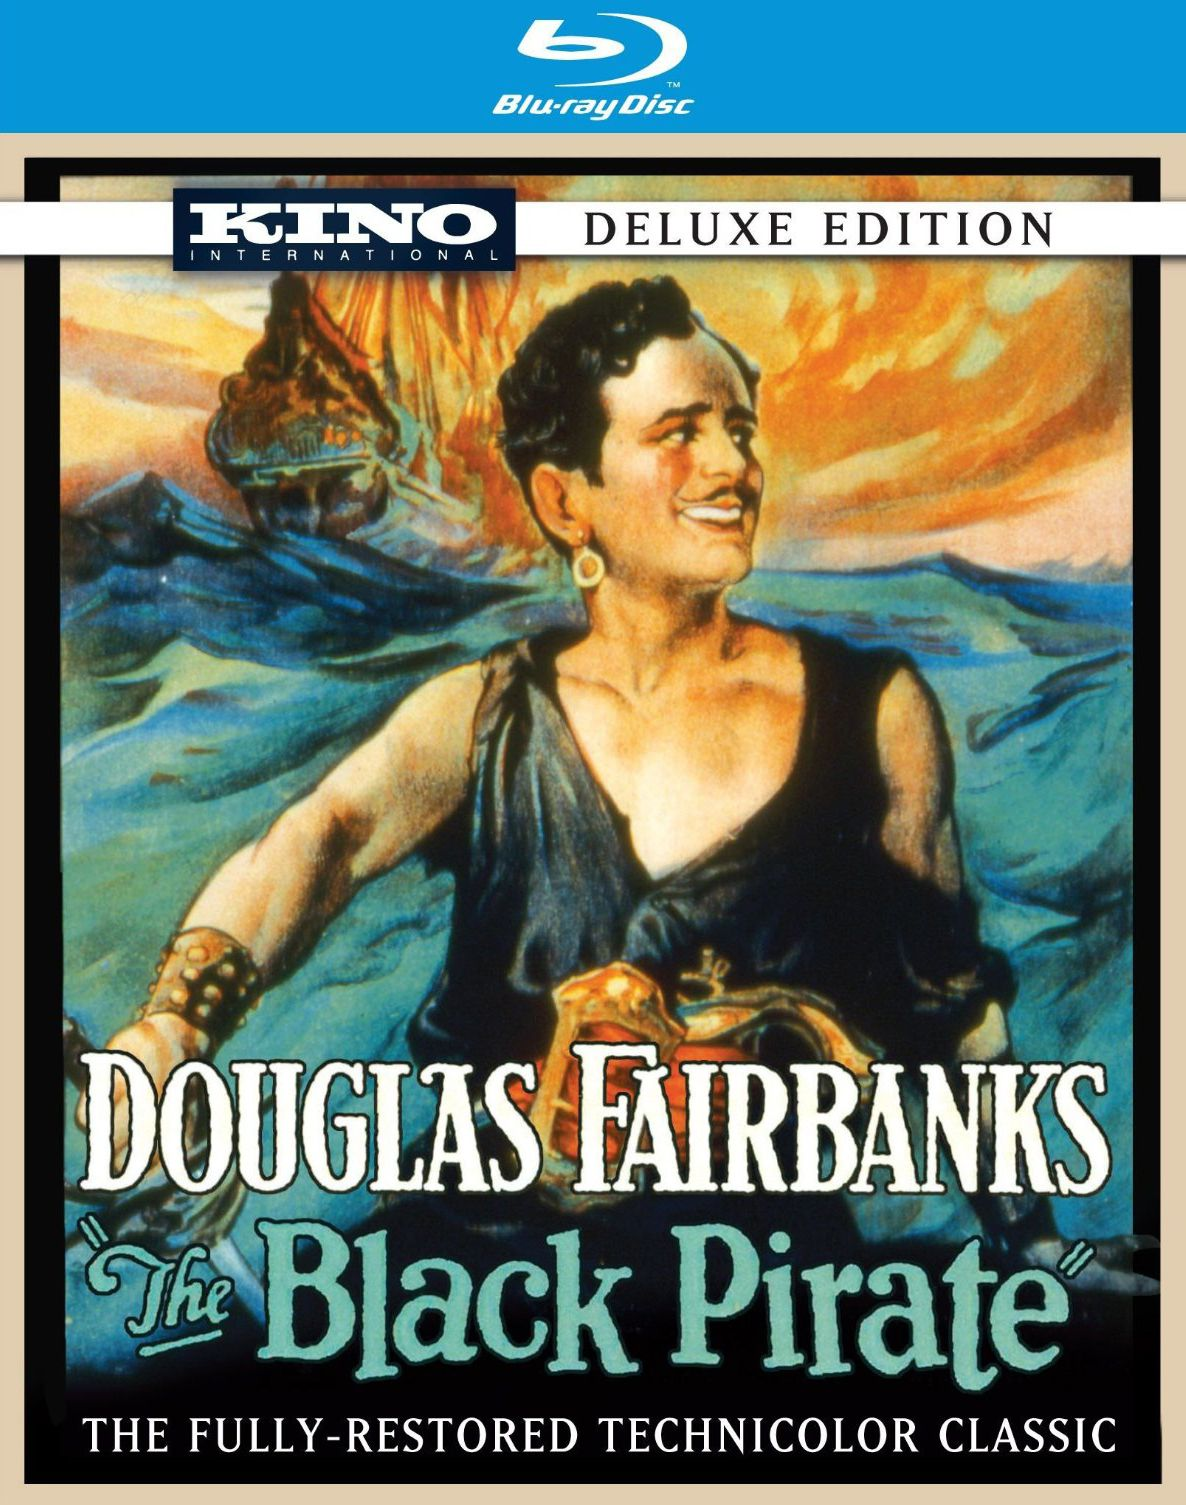 Publicity still for The Black Pirate